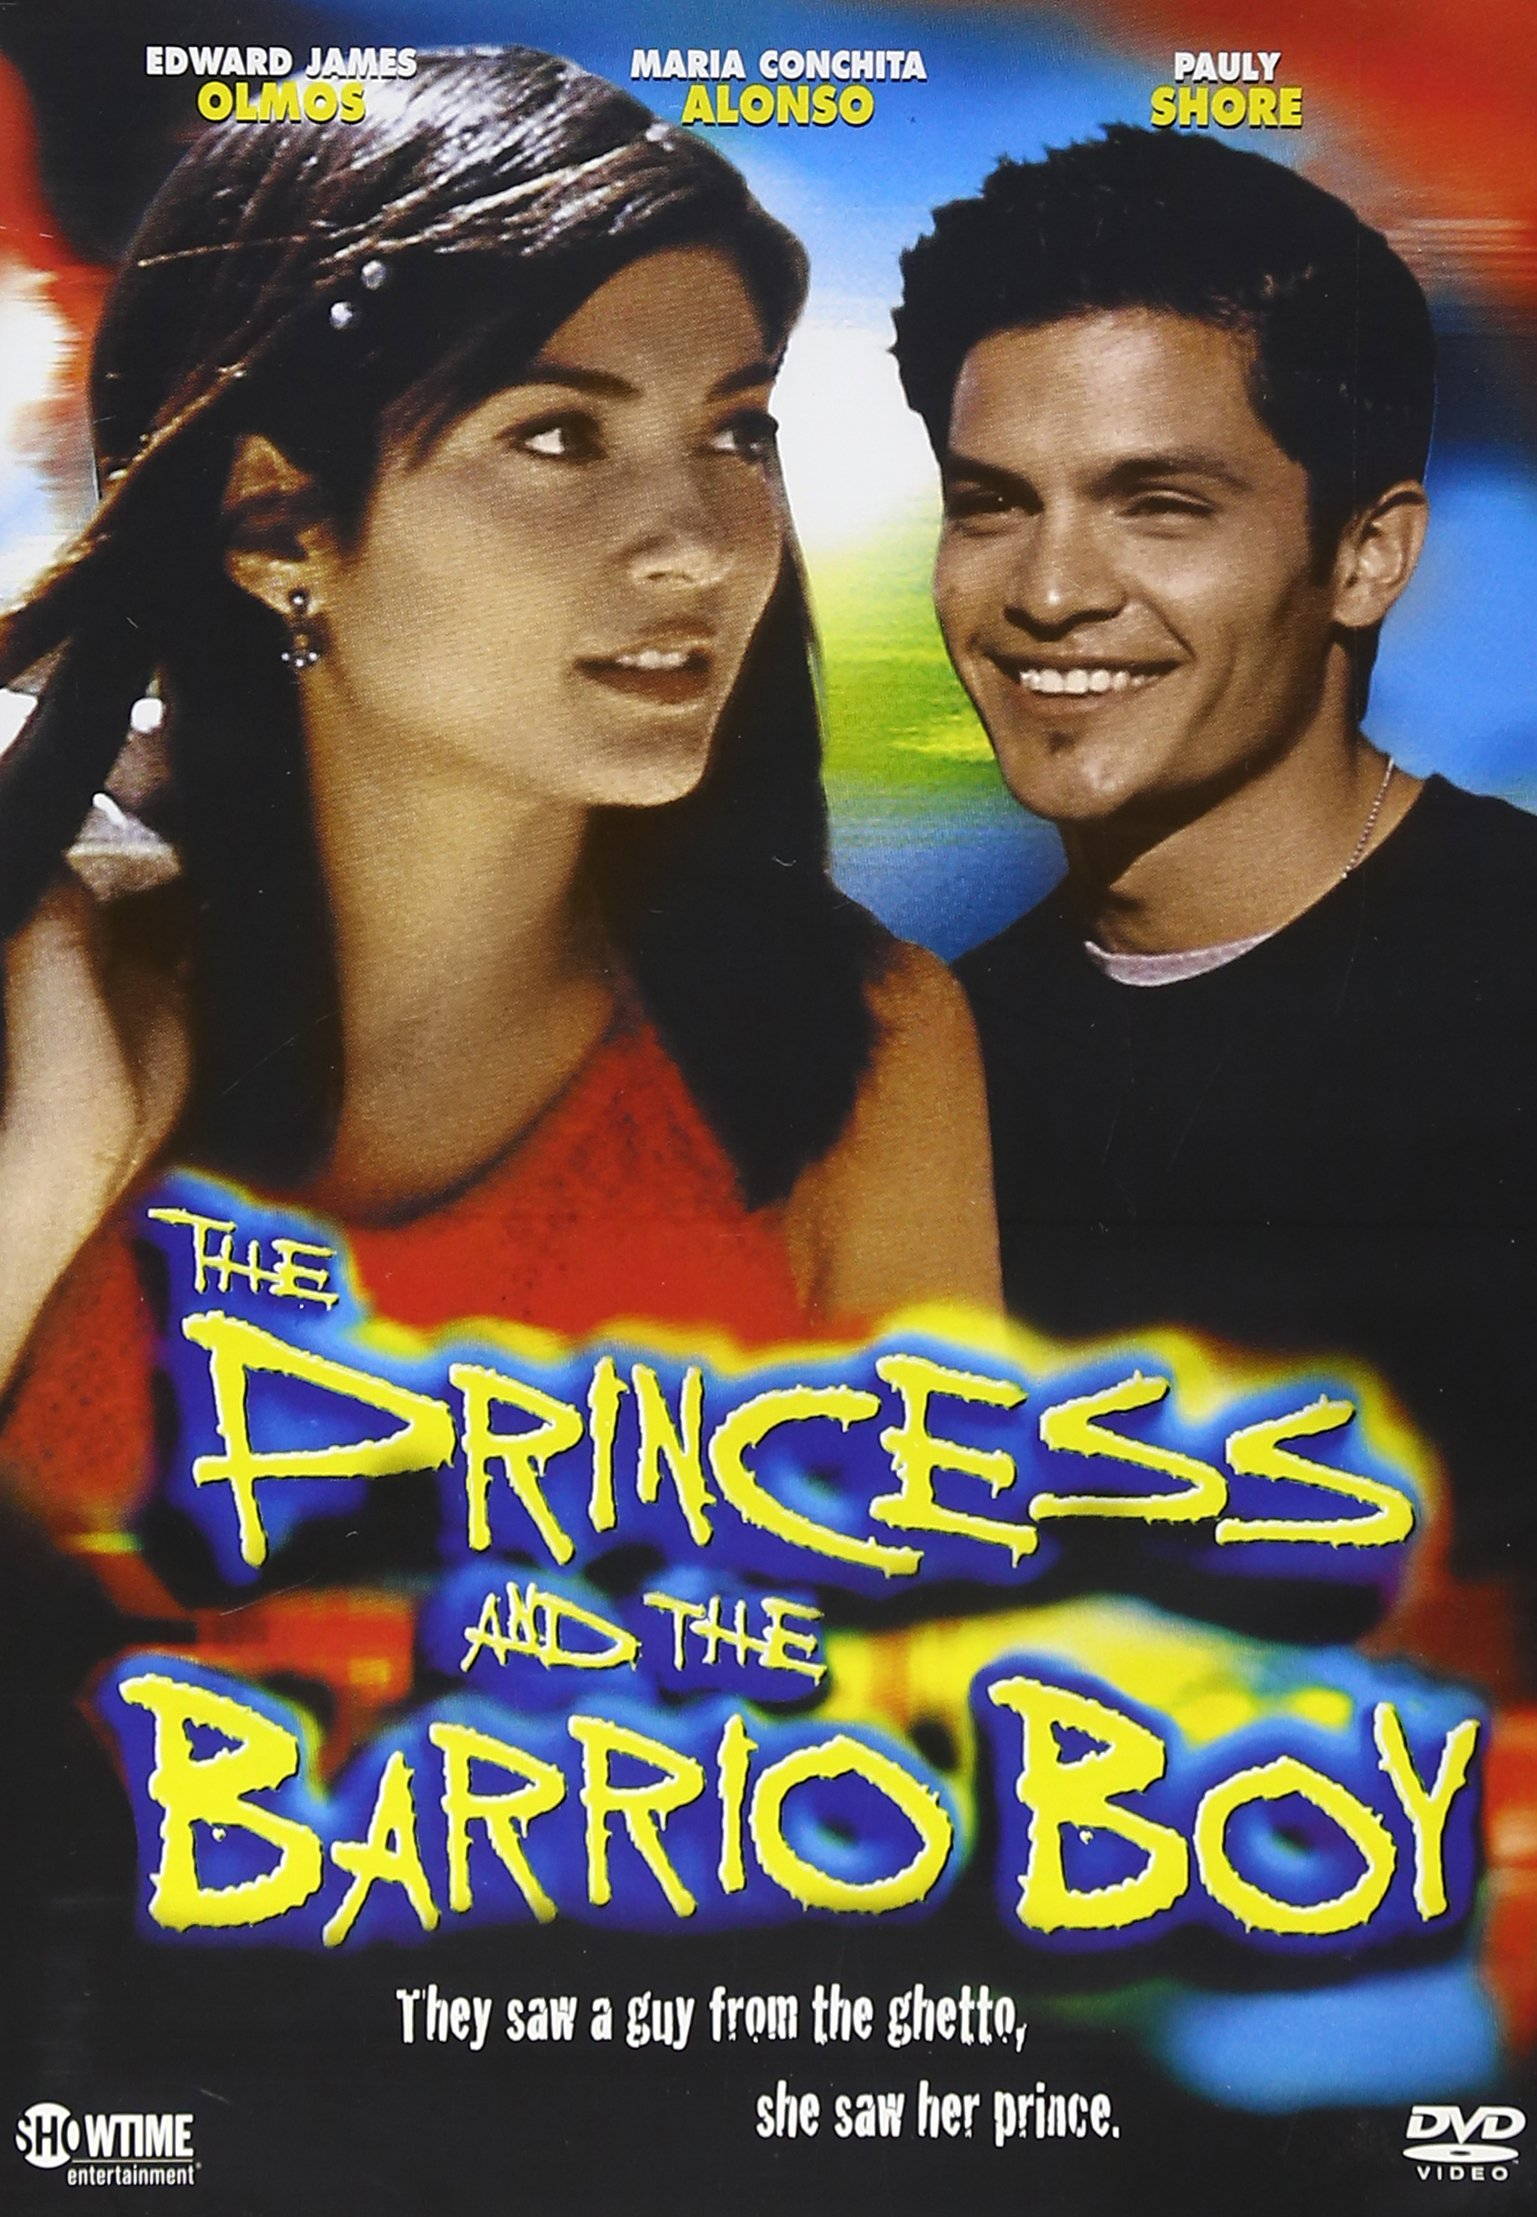 The Princess and the Barrio Boy by PARAMOUNT - UNI DIST CORP